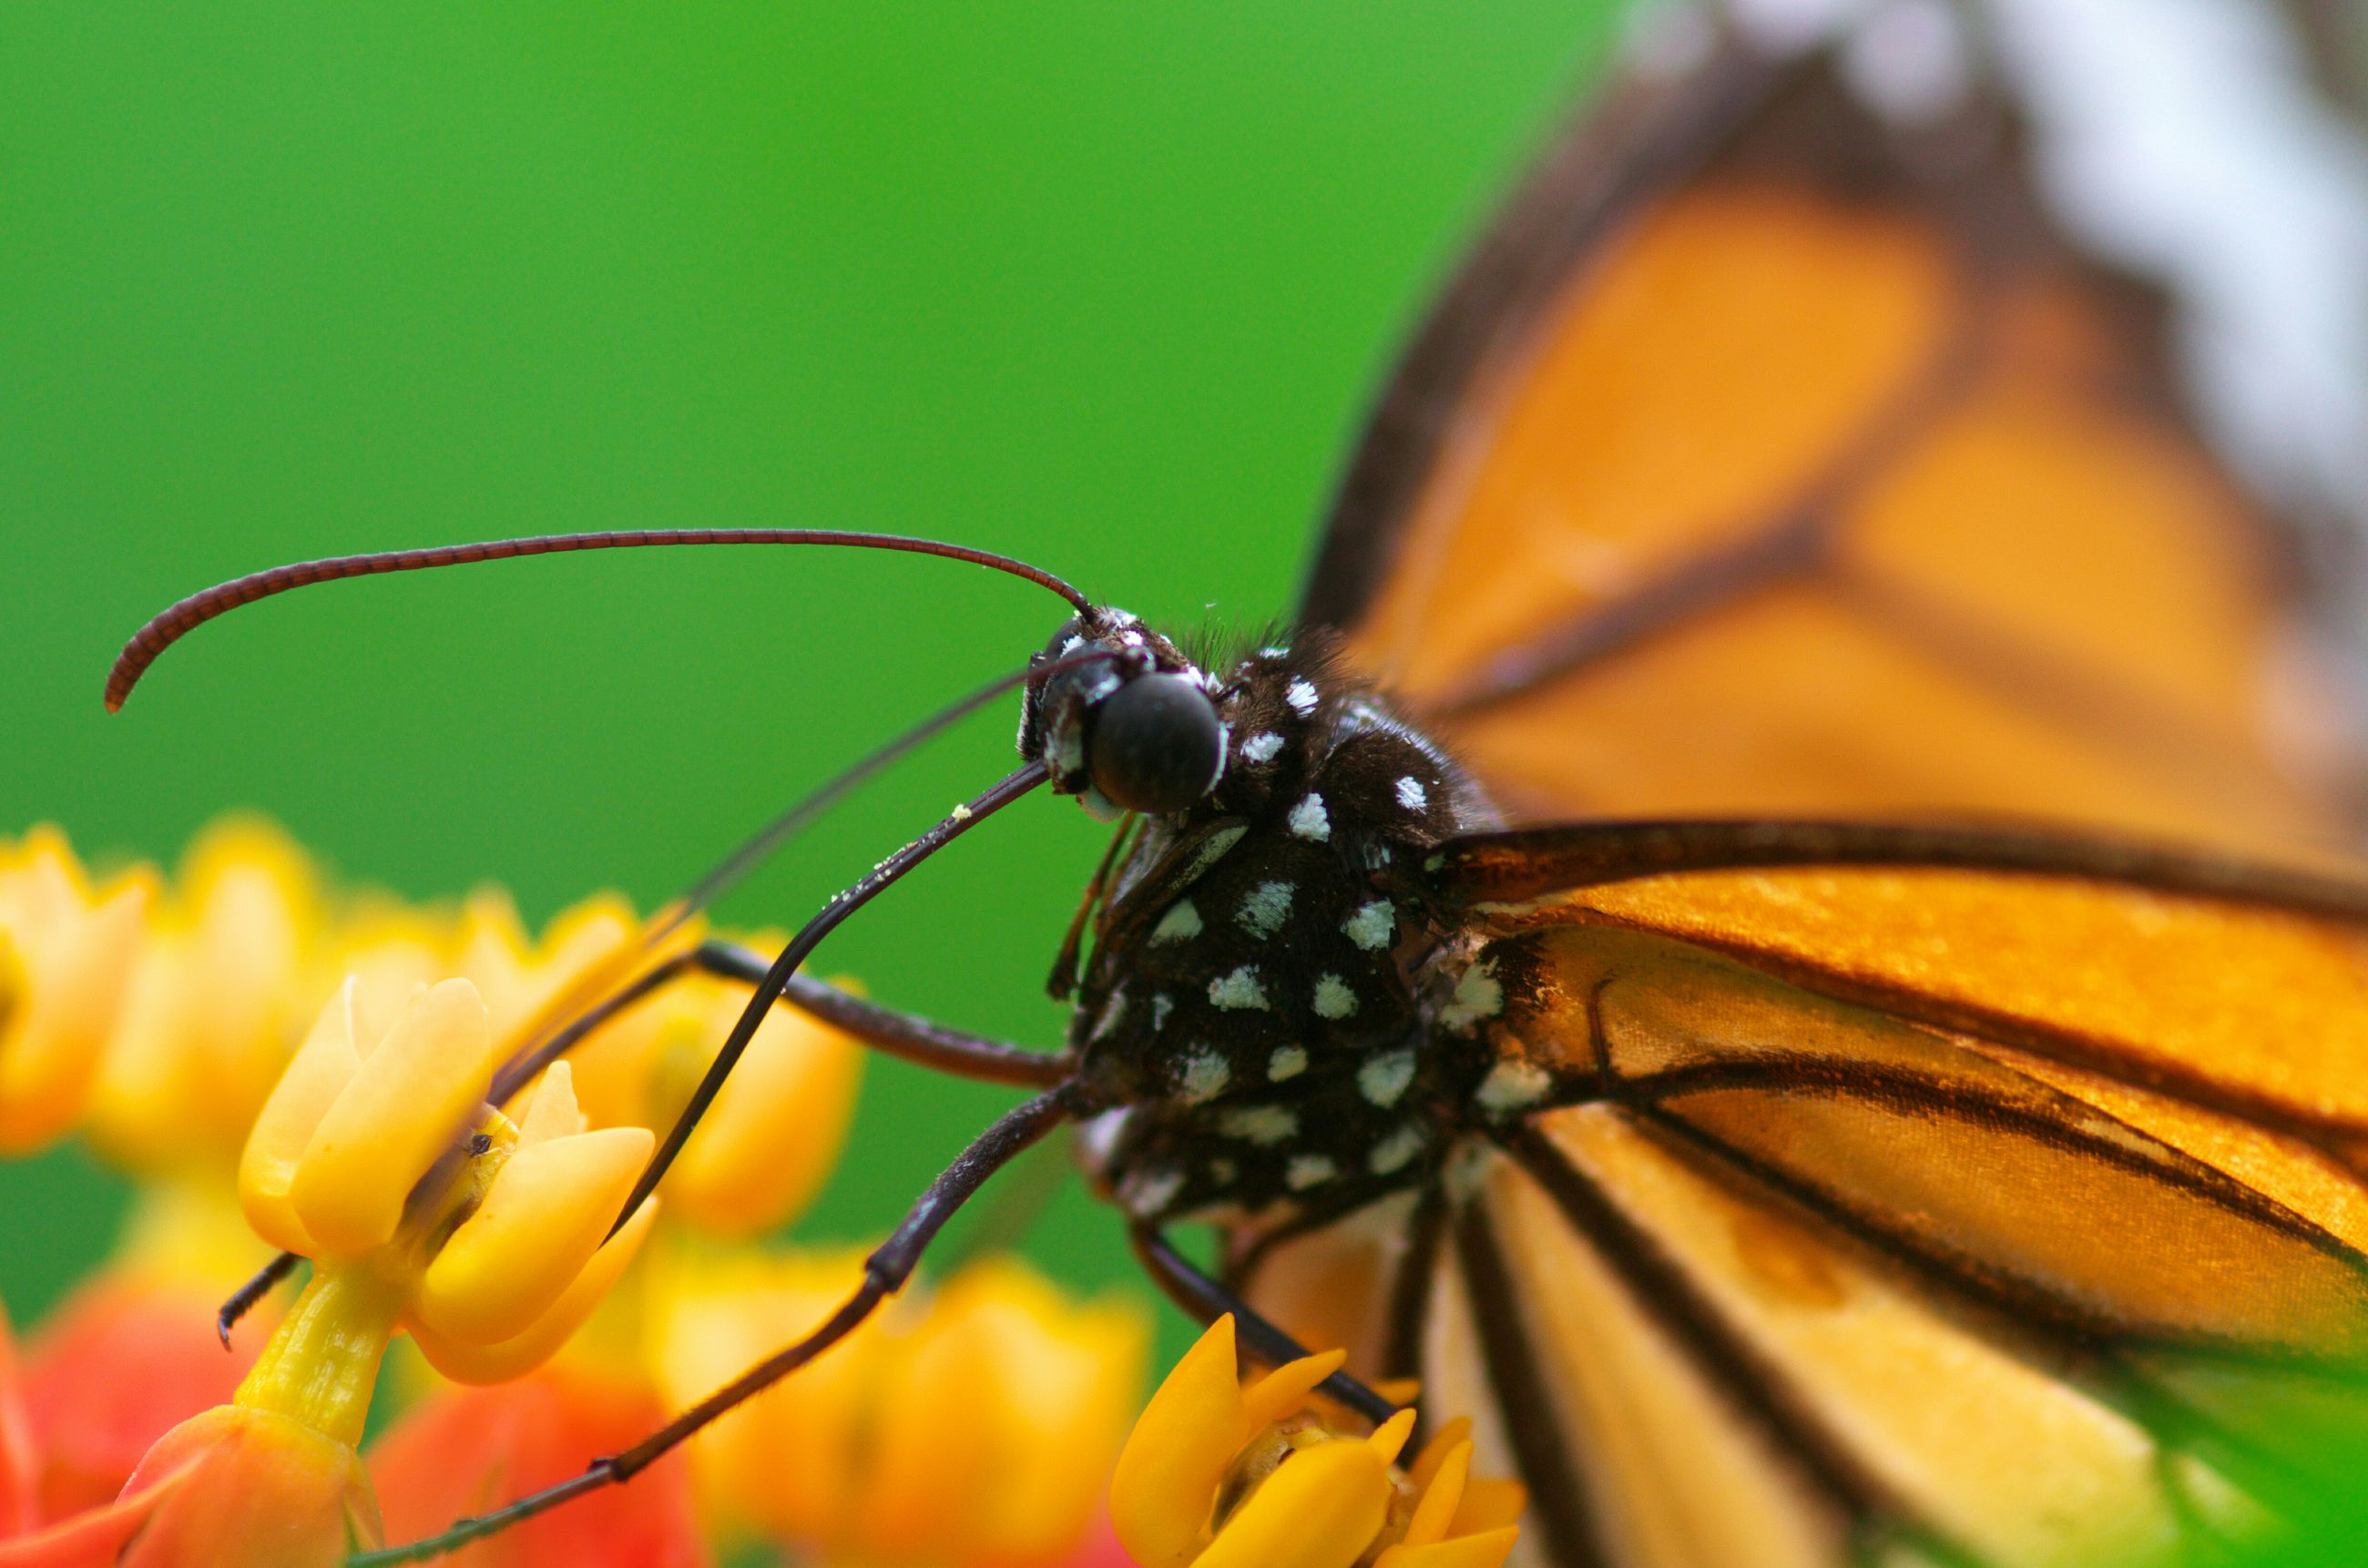 insect, one animal, animal themes, animals in the wild, wildlife, close-up, butterfly - insect, focus on foreground, butterfly, flower, animal wing, animal markings, beauty in nature, pollination, nature, natural pattern, animal antenna, fragility, plant, perching